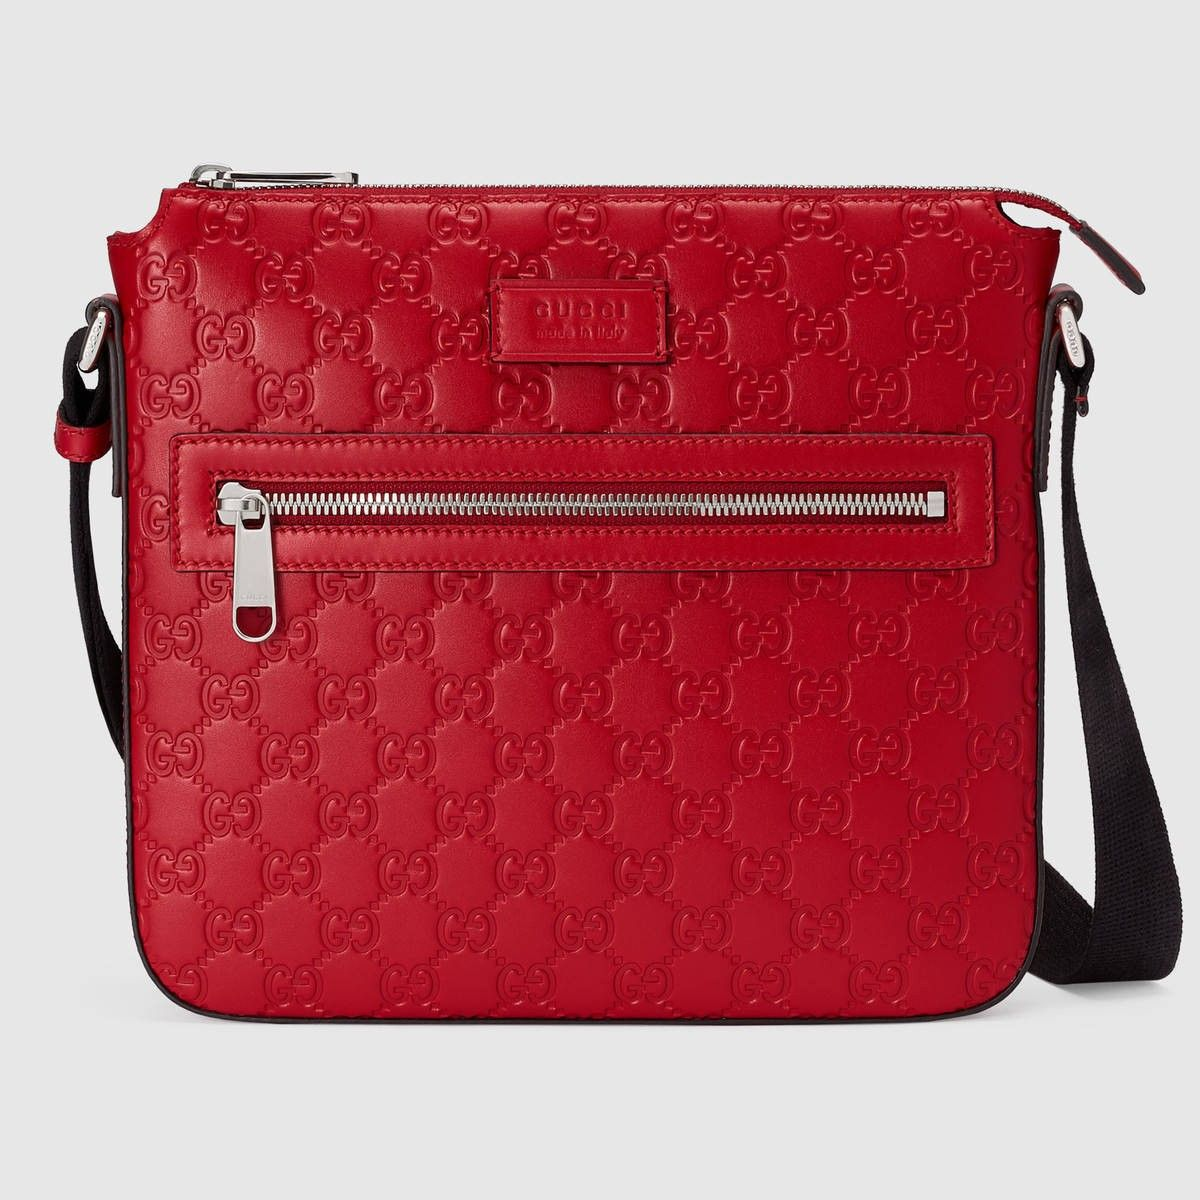 98582ee6ef7 GUCCI Gucci Signature messenger - hibiscus red Gucci Signature.  gucci  bags   shoulder bags  lining  nylon  suede